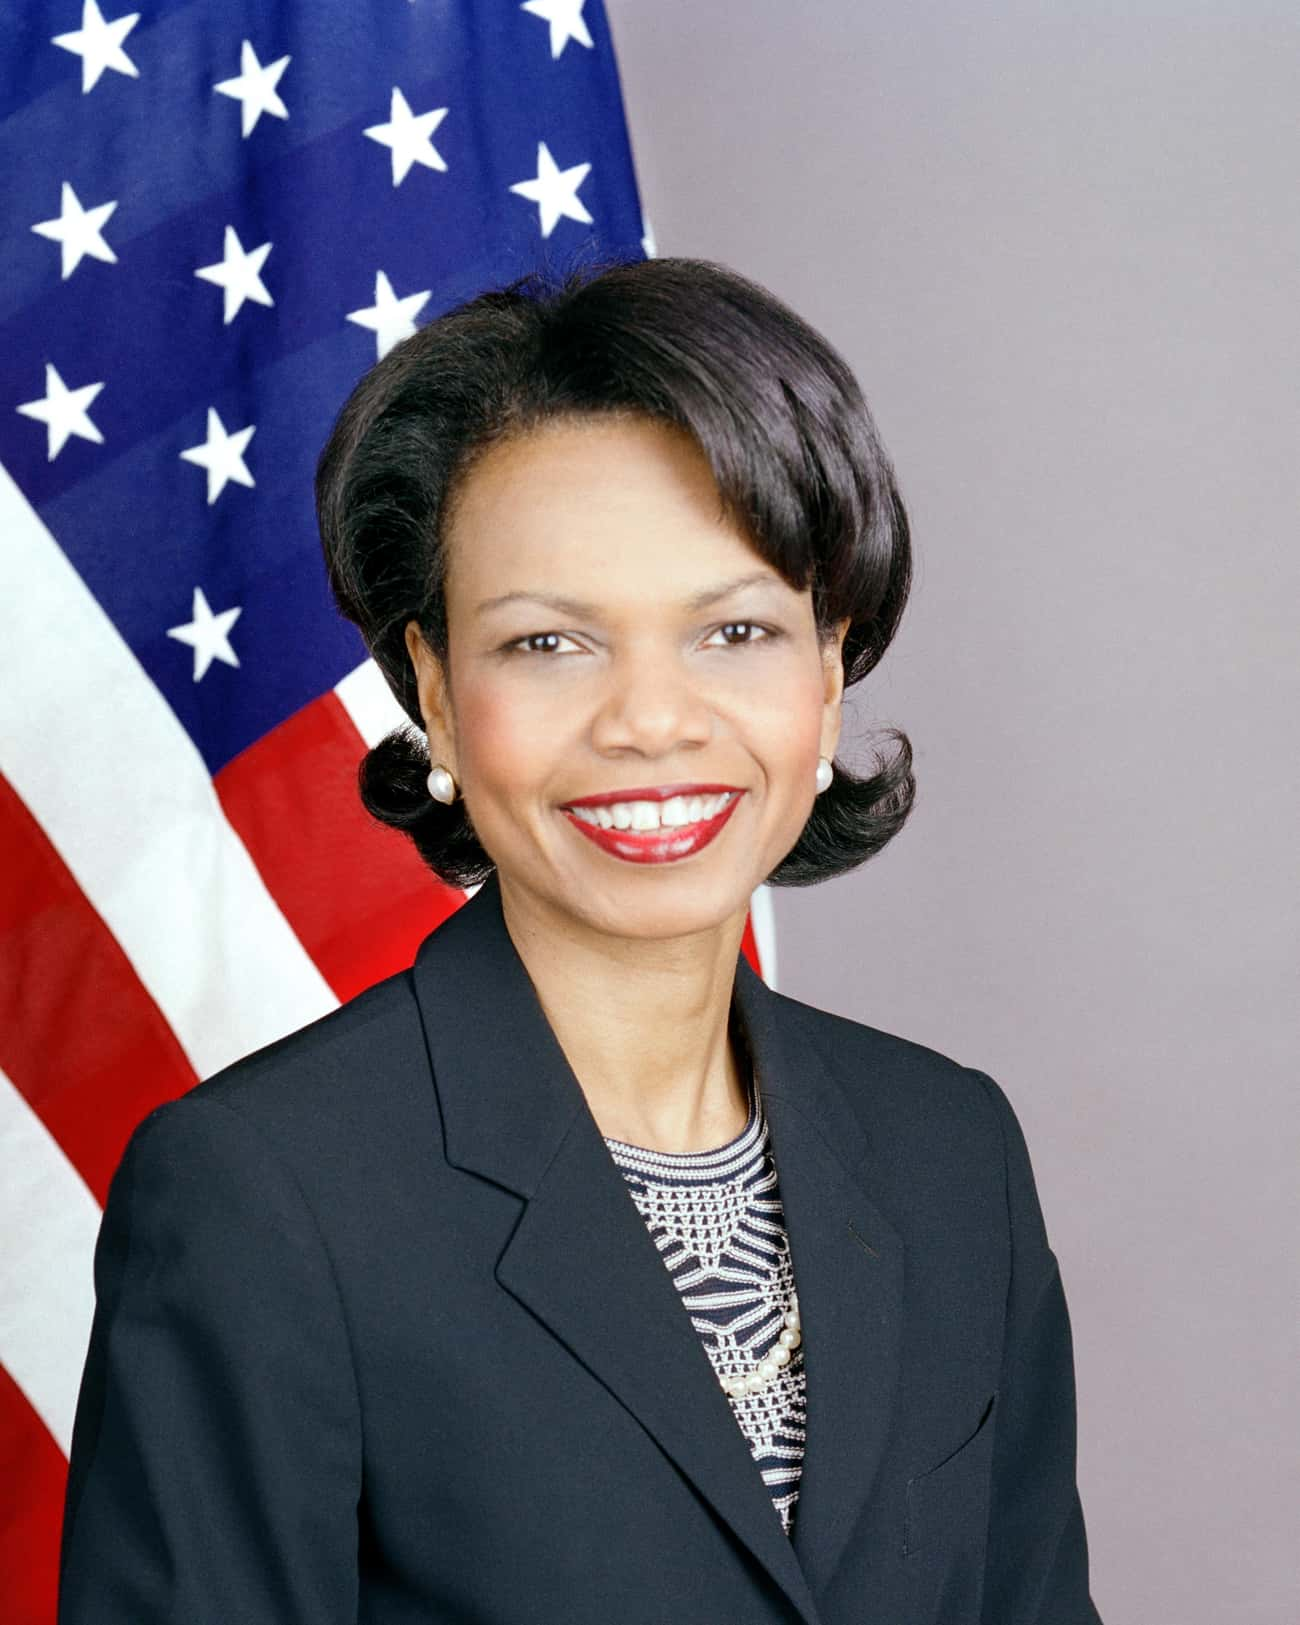 Condoleezza Rice is listed (or ranked) 3 on the list Famous Female Politicians